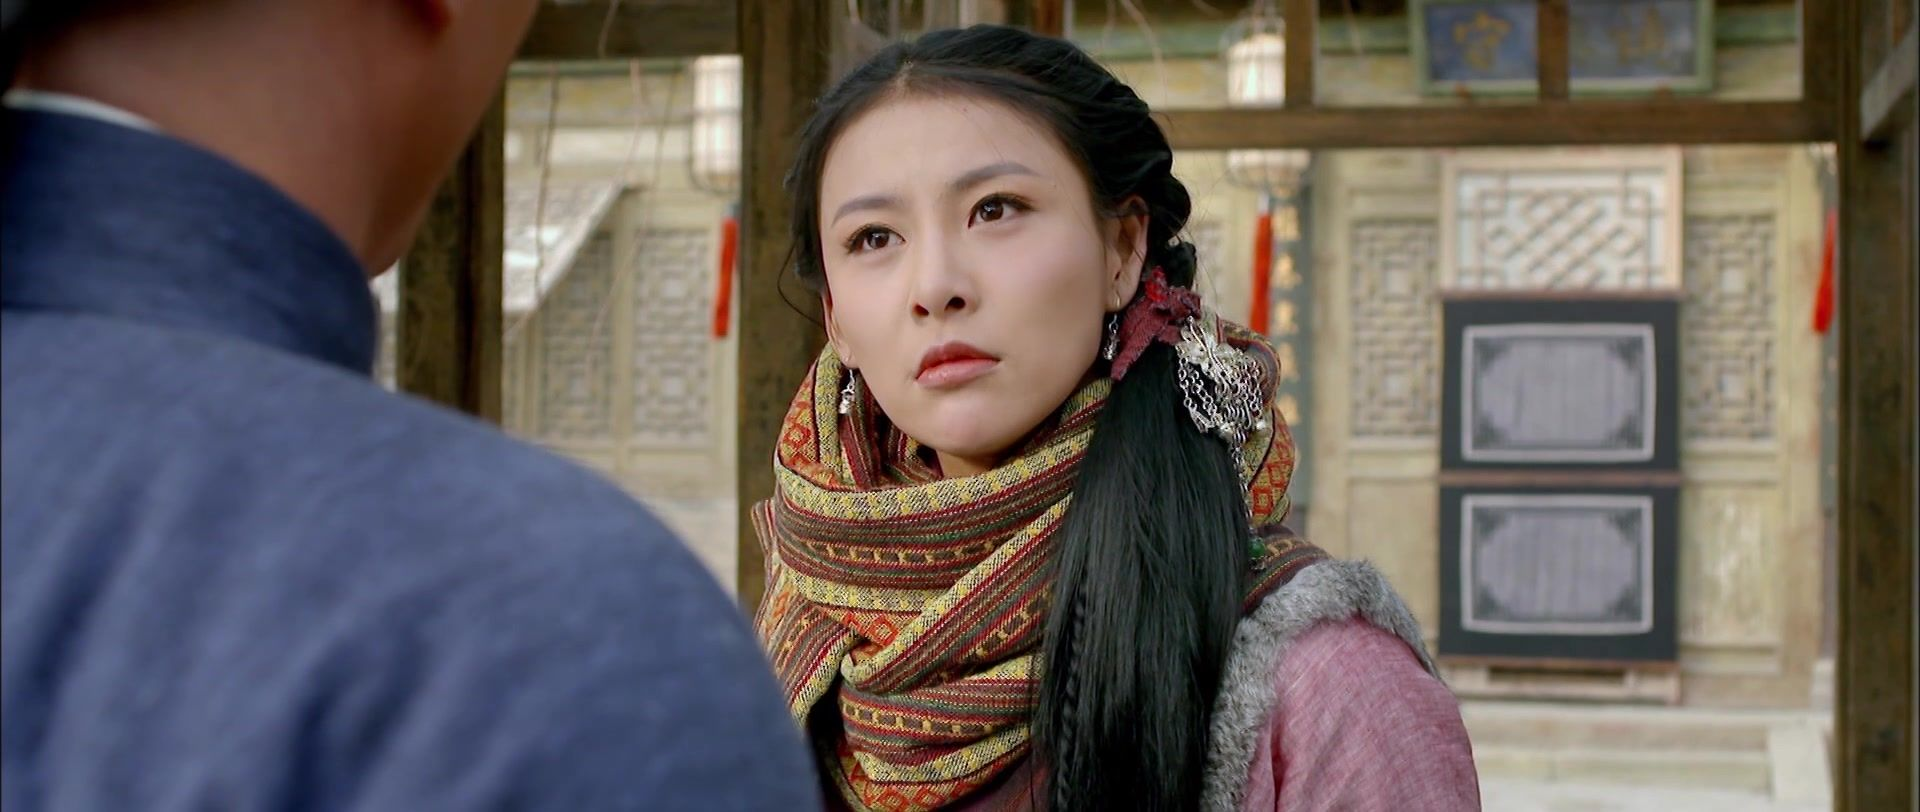 The Great Protector - 镖门 - Watch Full Episodes Free - China - TV